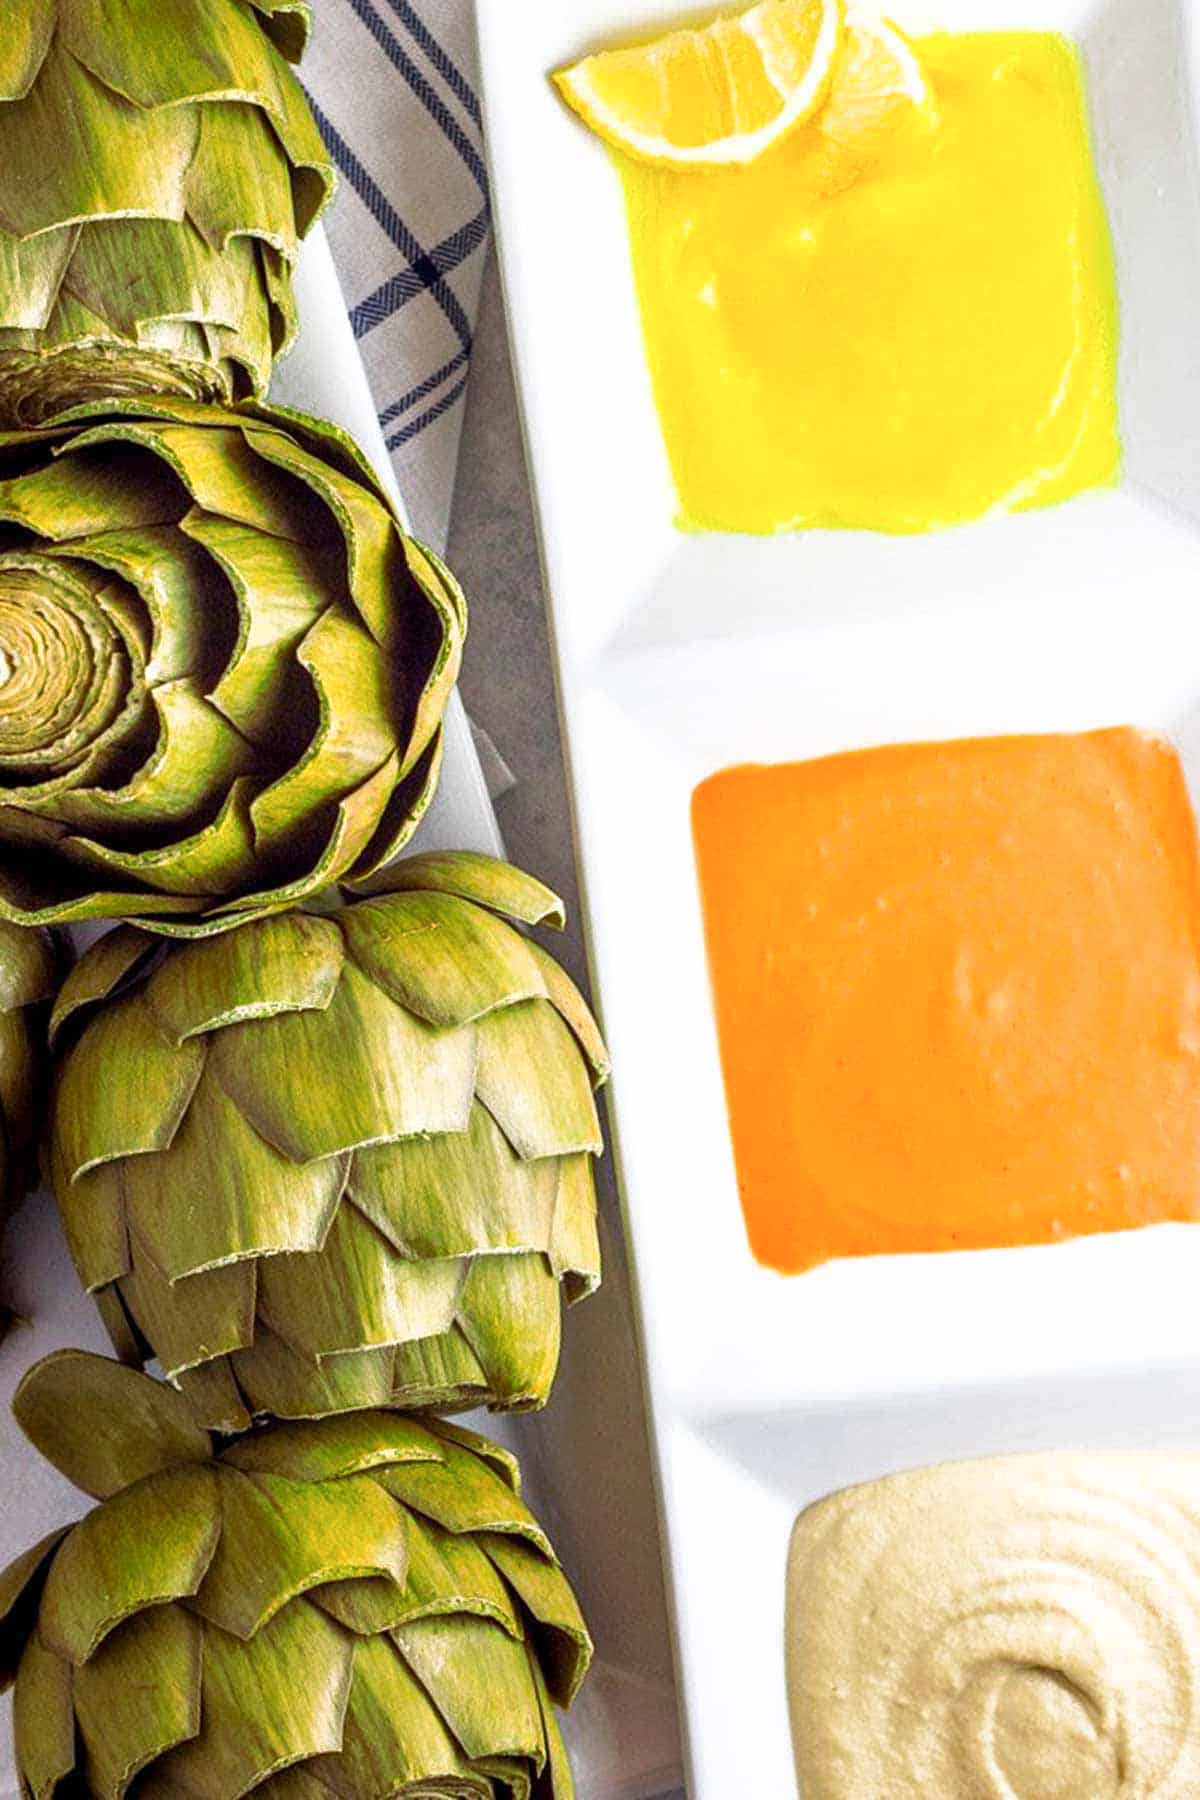 artichokes star in many spring recipes